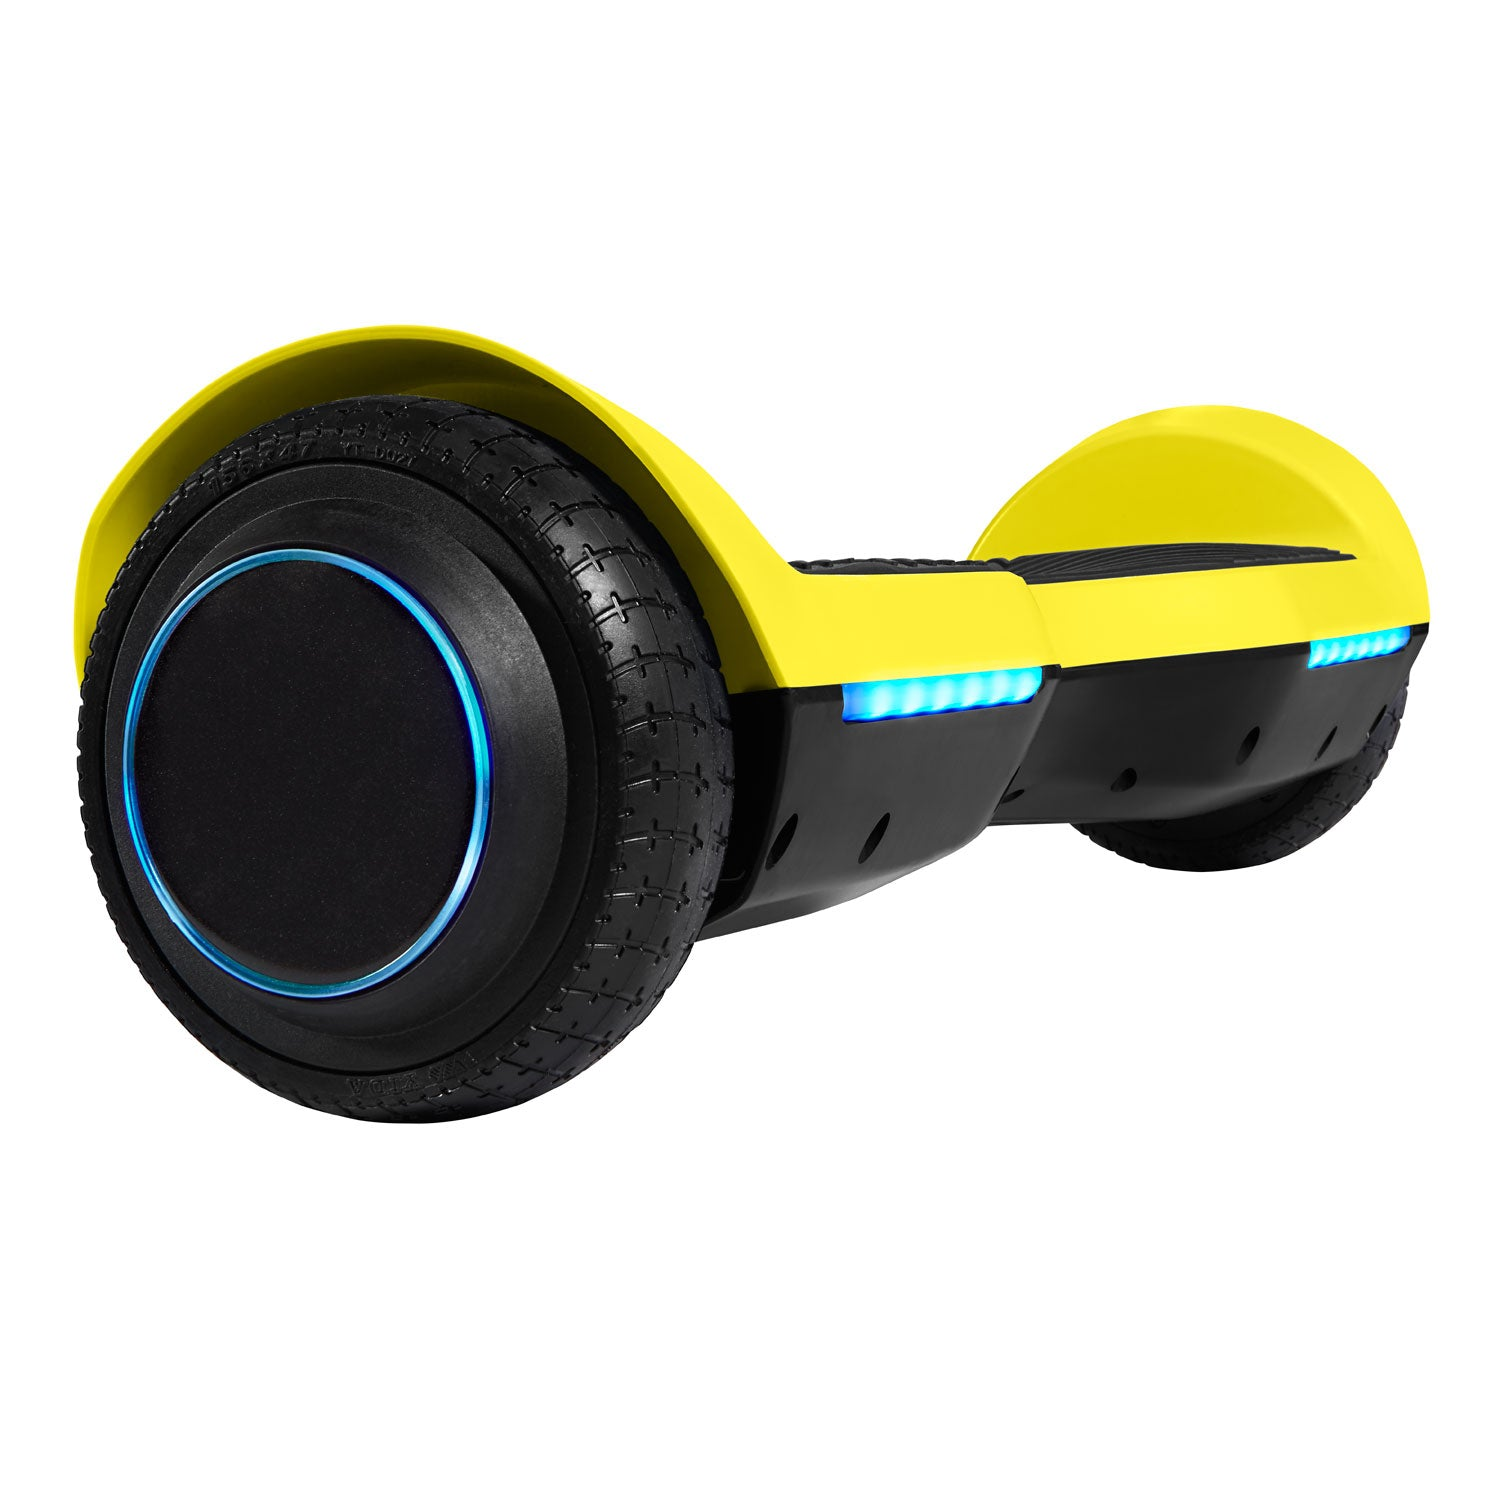 yellow Main image srx bluetooth hoverboard